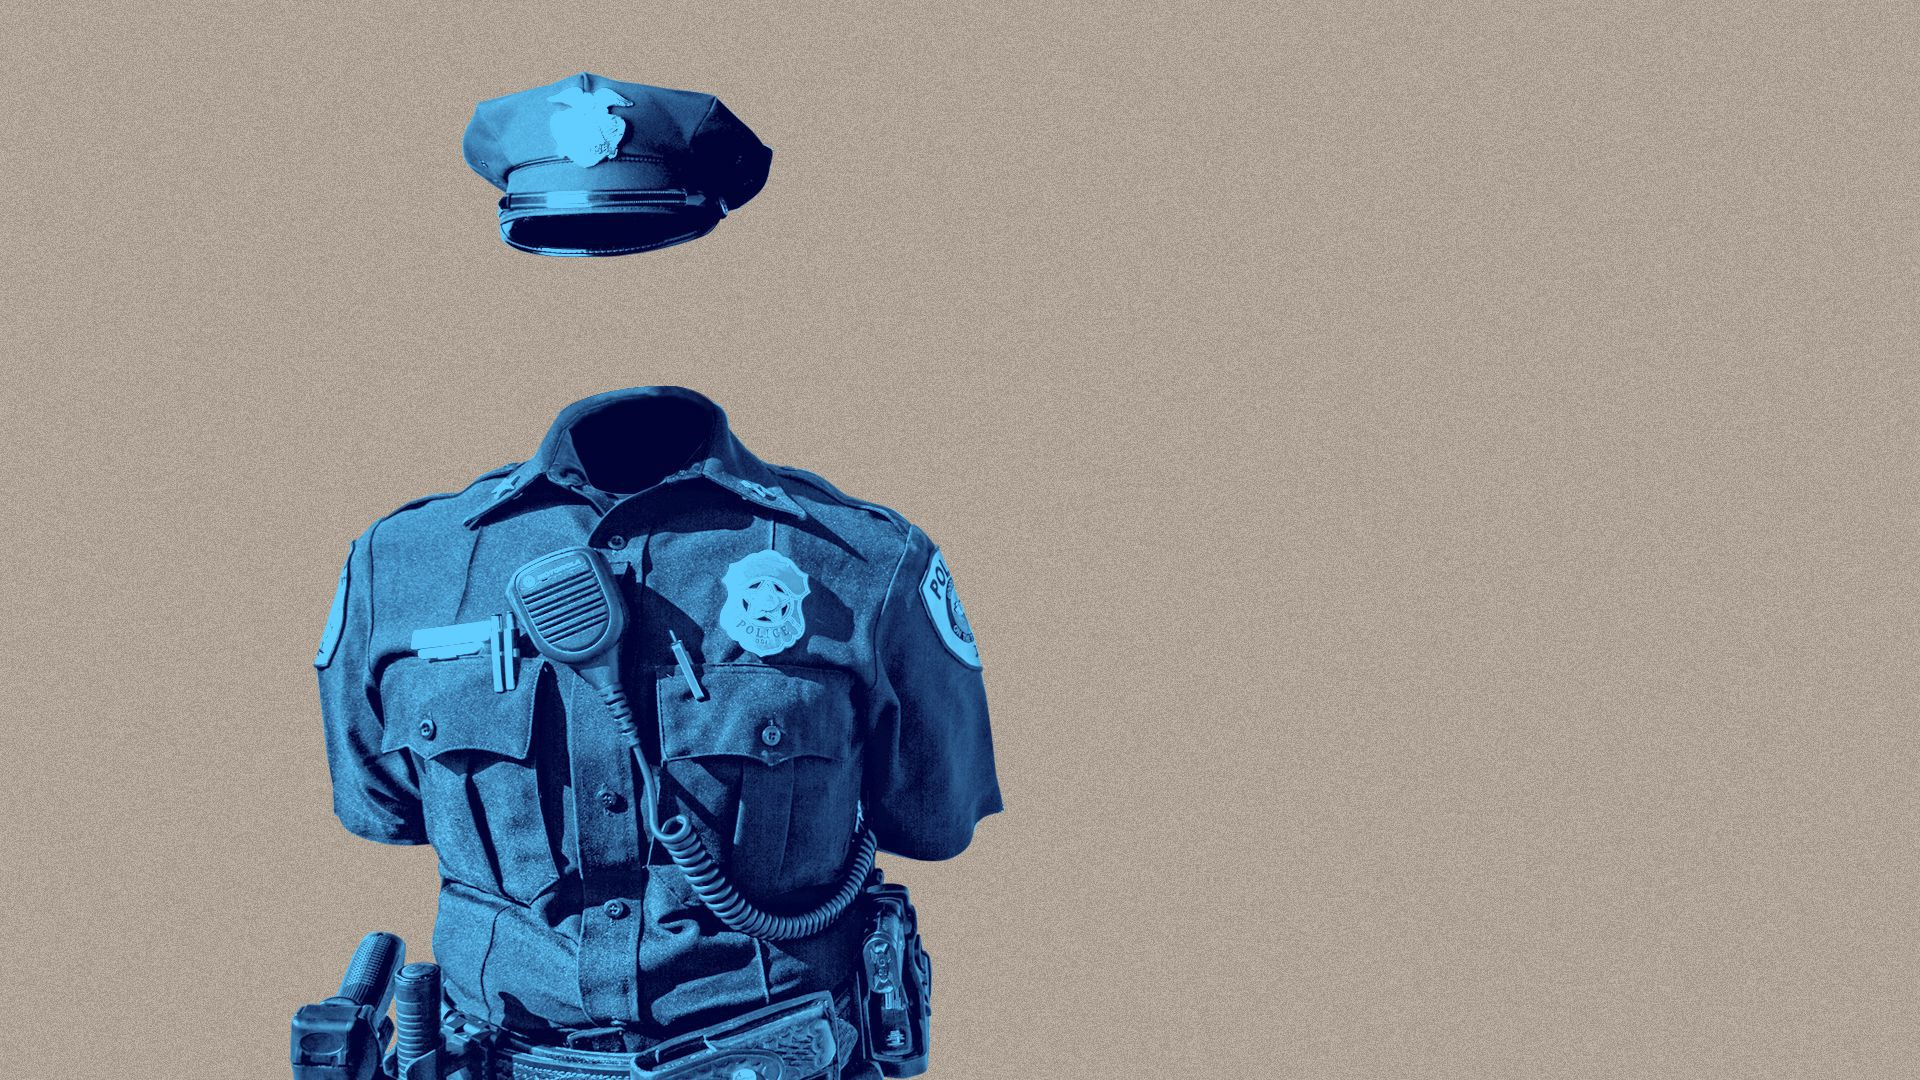 Illustration of a police uniform standing with no person inside it.